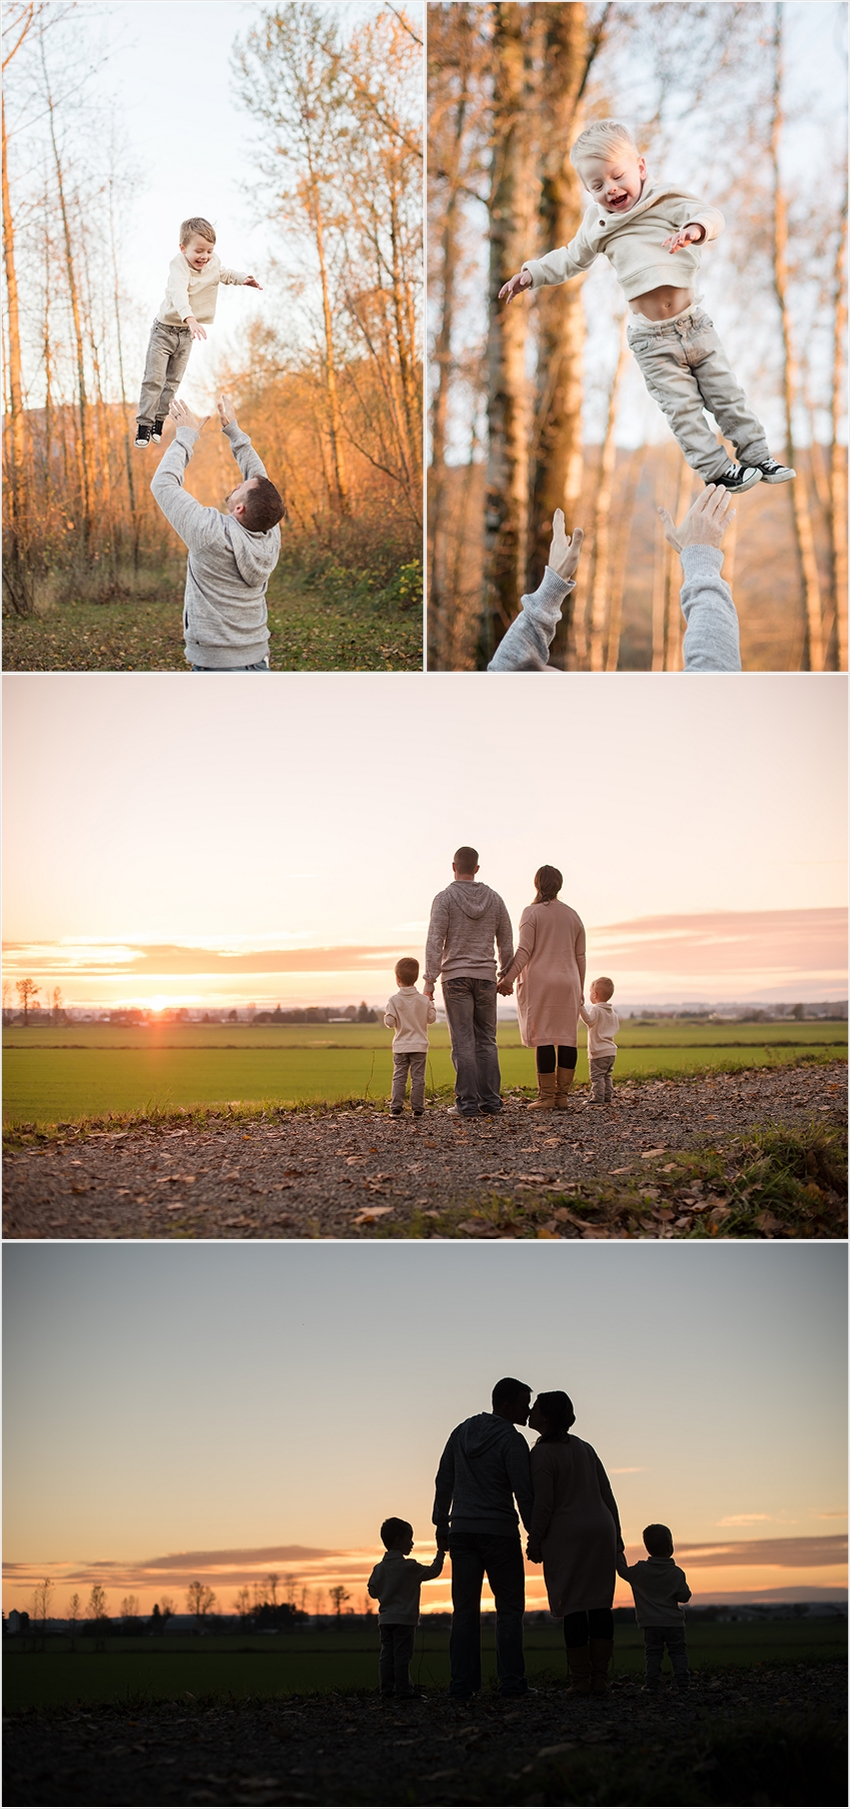 abbotsford-outdoor-photographer-abbotsford-sunset-012-side-12